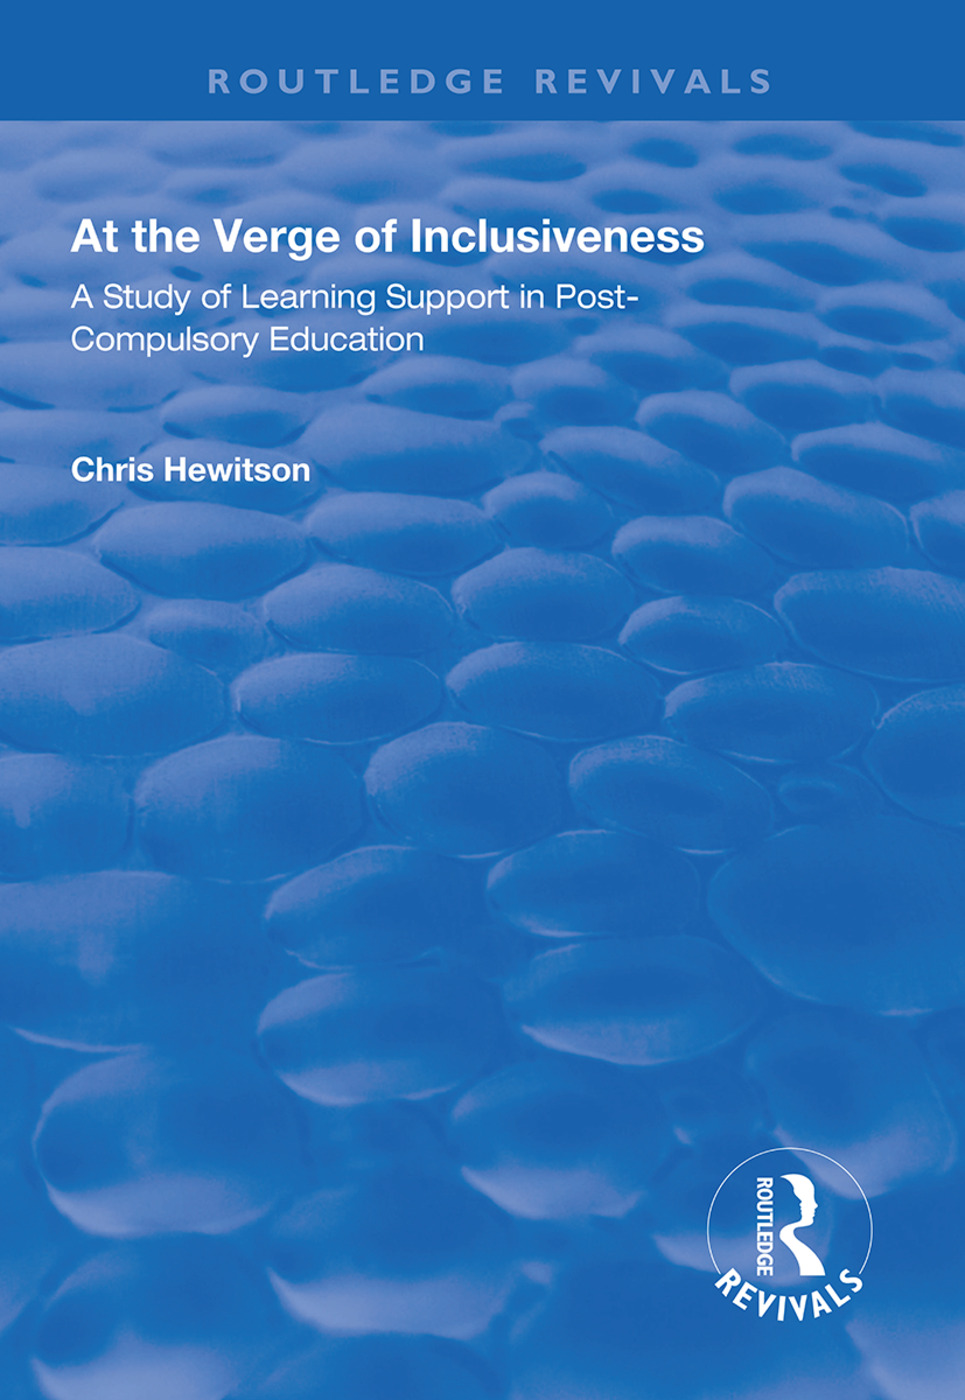 At the Verge of Inclusiveness: A Study of Learning Support in Post-Compulsory Education book cover